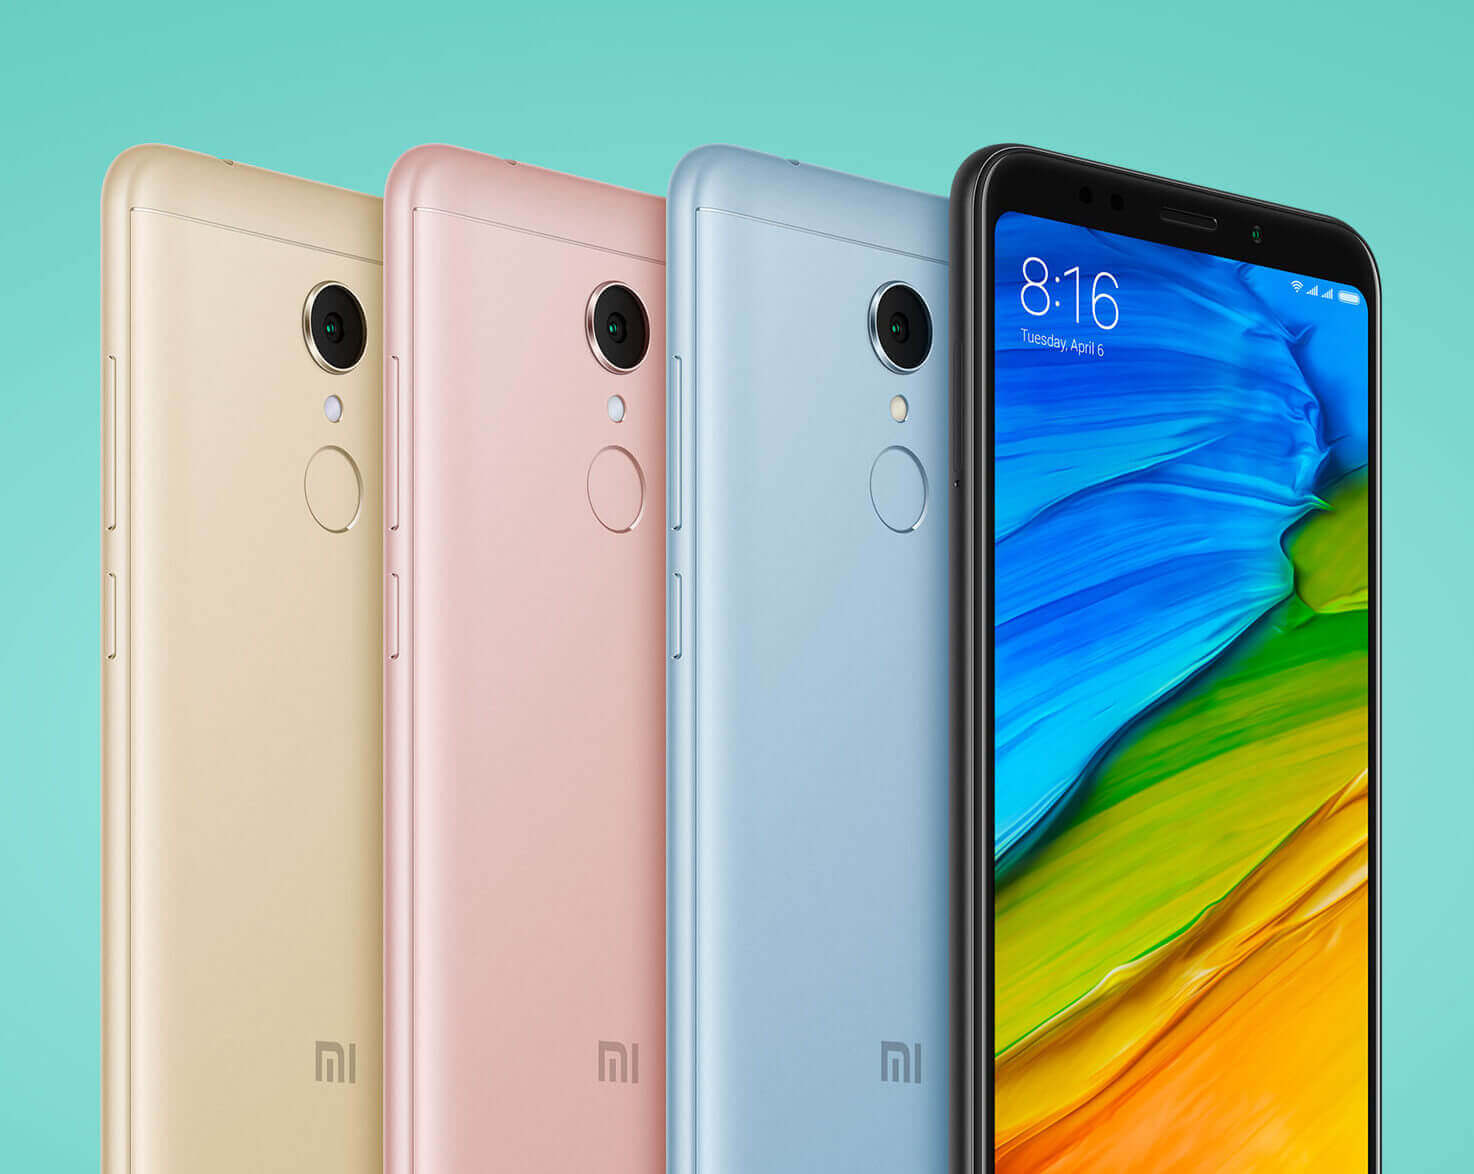 Redmi 5 : Review, Specifications and Price in India